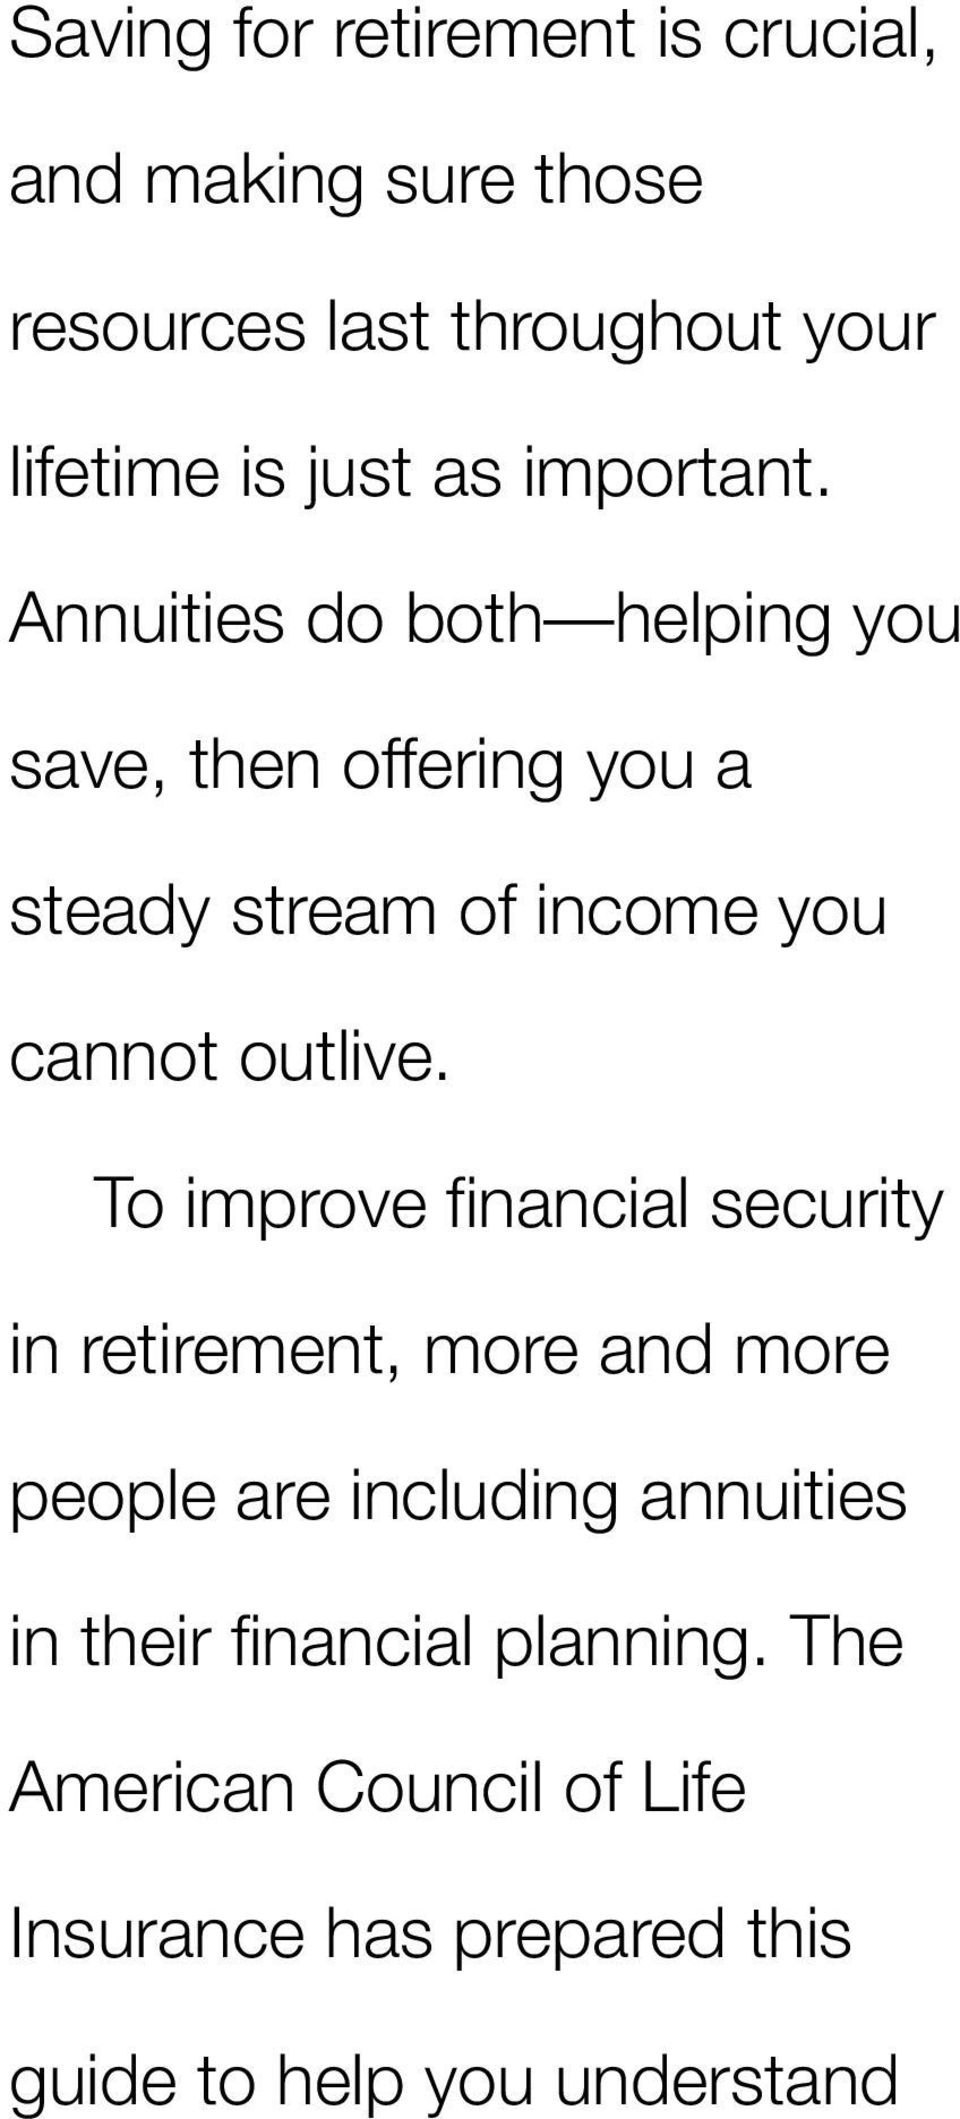 Annuities do both helping you save, then offering you a steady stream of income you cannot outlive.